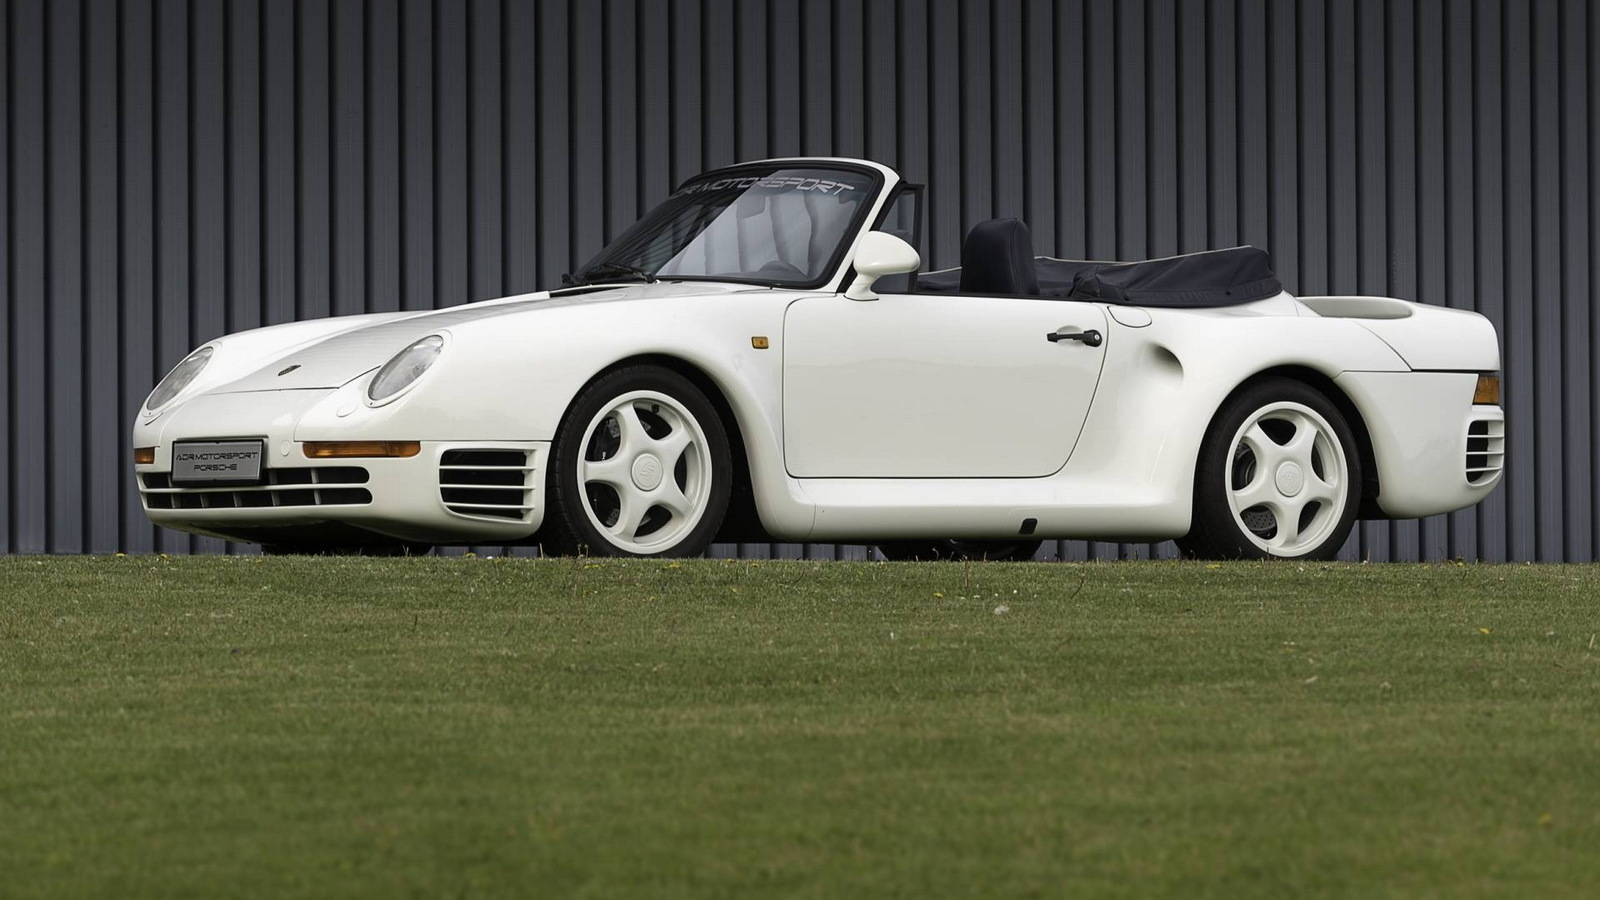 One-off Porsche 959 convertible for sale